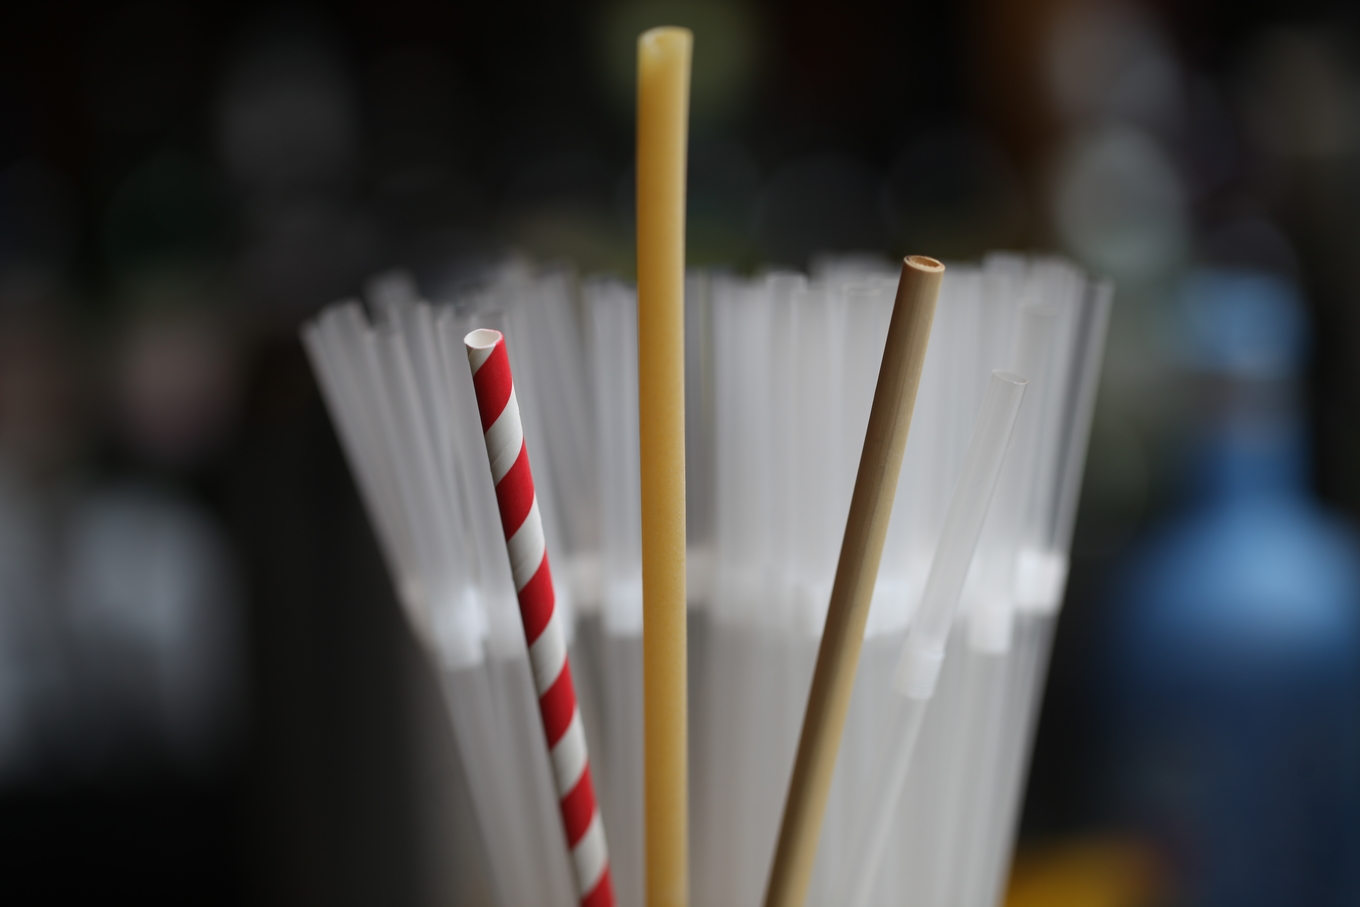 Straws - 10 alternatives to plastic straws image 1